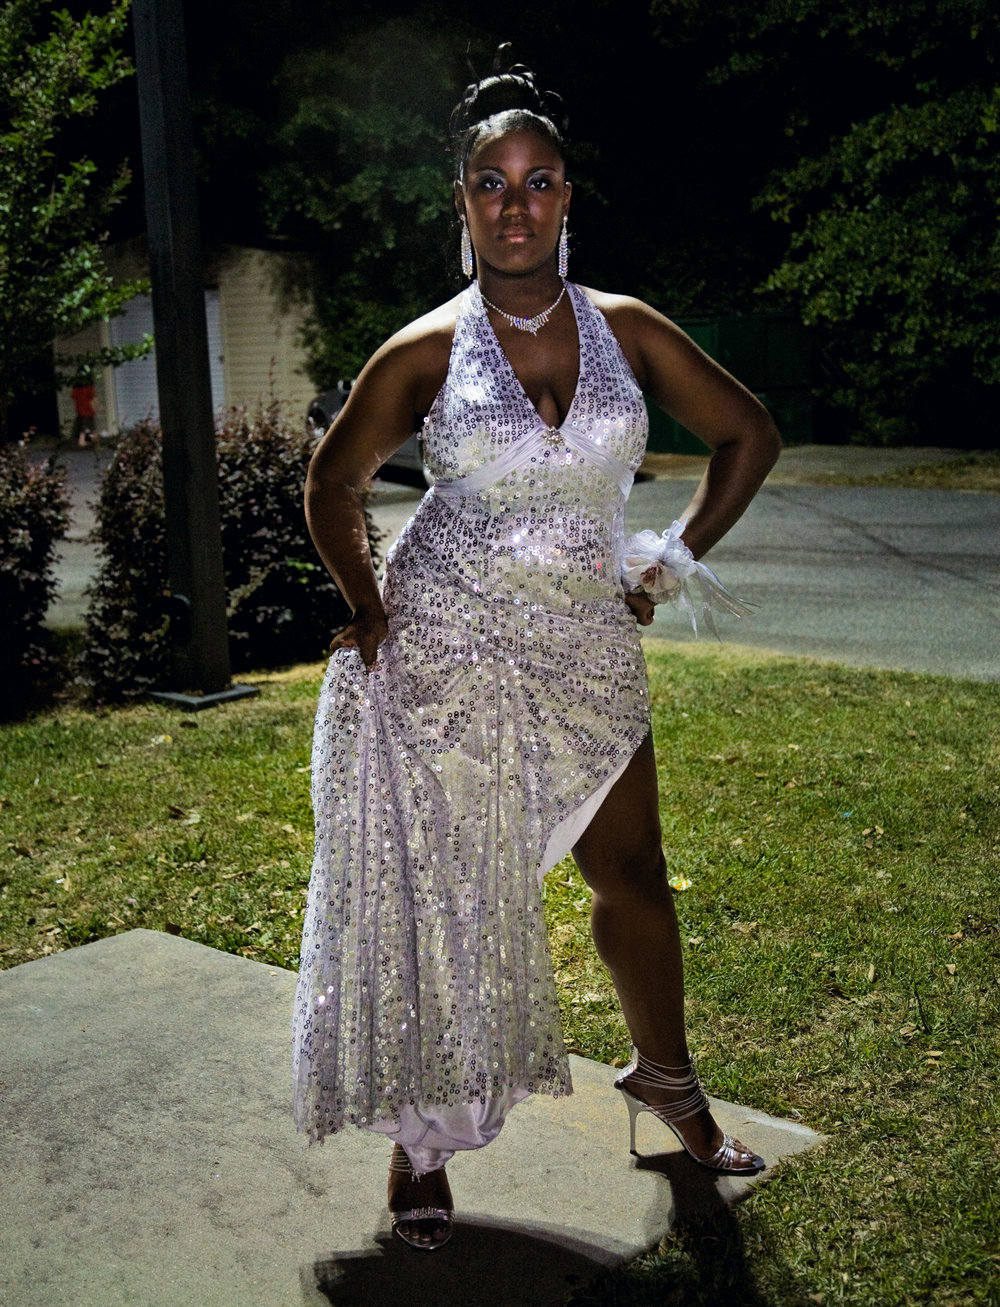 Felicia after the black prom, Vidalia, Georgia, 2009